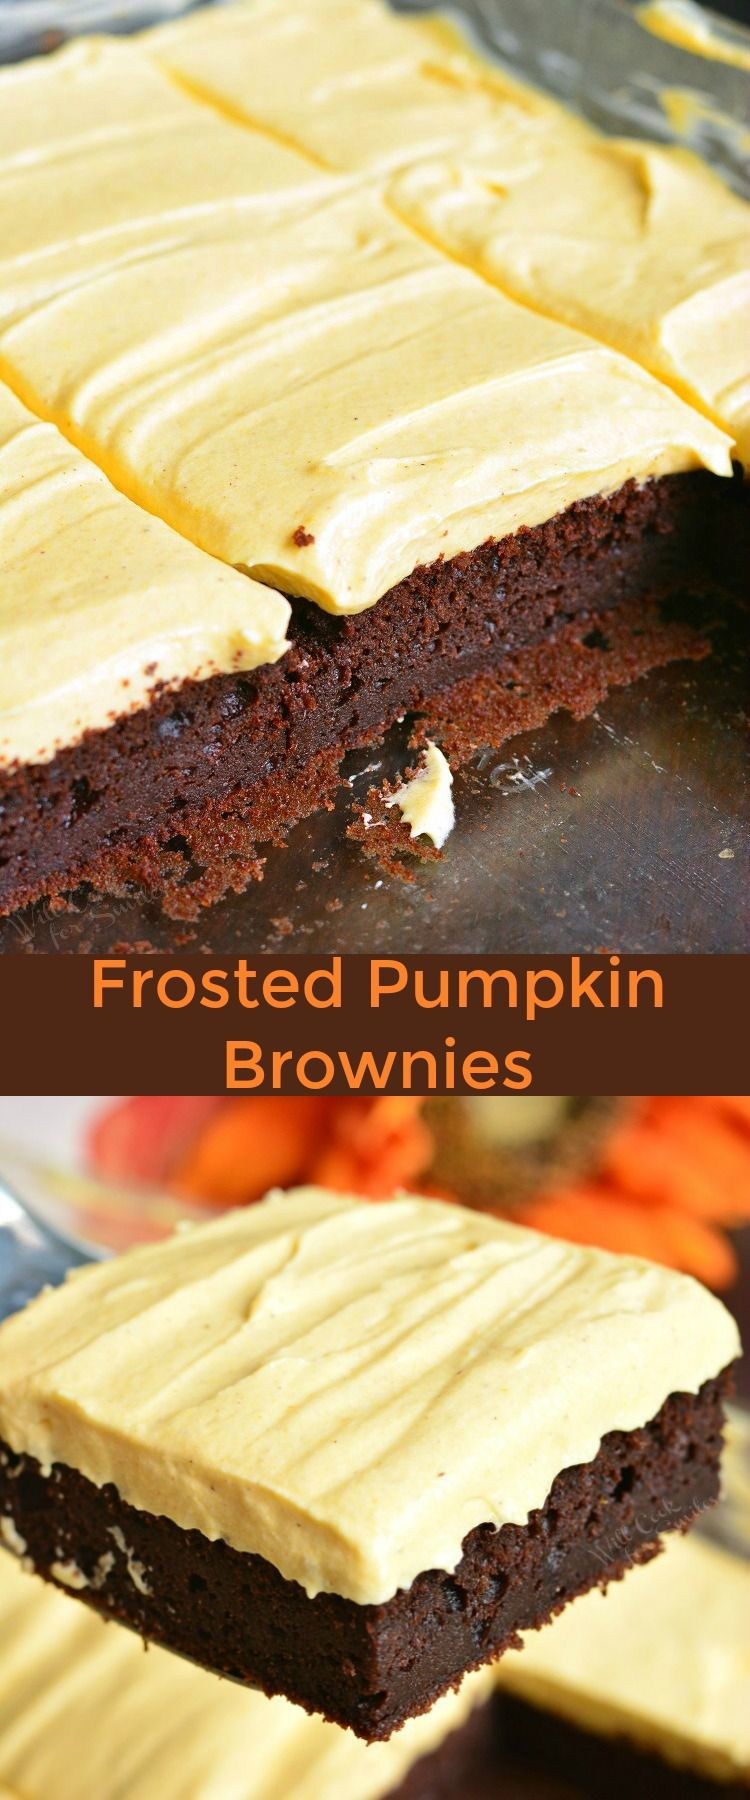 Frosted Pumpkin Brownies. These rich, soft and moist dark chocolate pumpkin brownies are topped with smooth, creamy pumpkin cream cheese frosting. Perfect easy fall dessert. #brownies #chocolate #pumpkin #frosted #homemade #frosting #creamcheesefrosting #dessert #pumpkindesserts